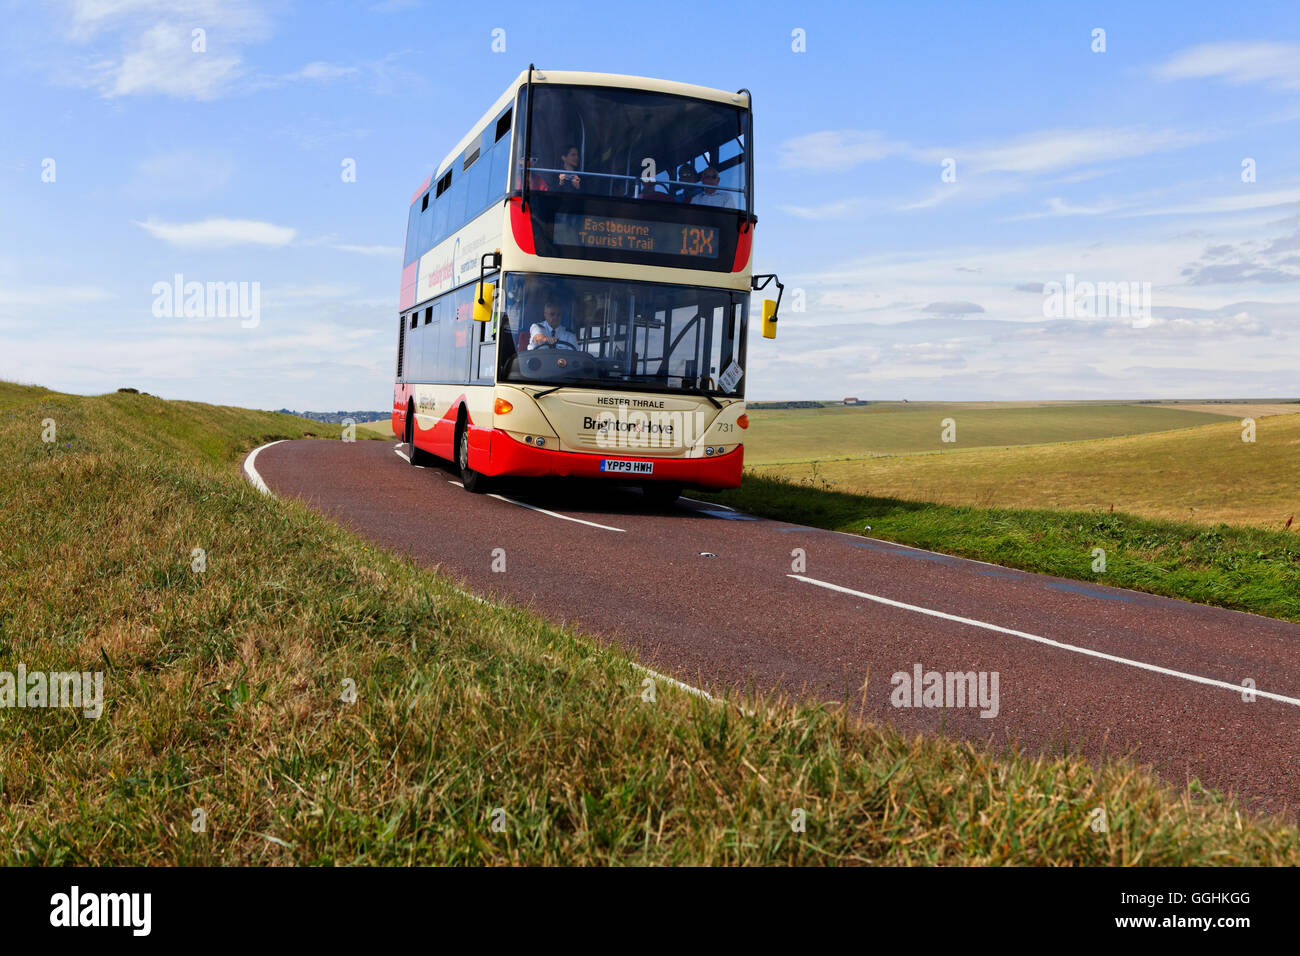 Public bus on a country road near Beachy Head, East Sussex, England, Great Britain - Stock Image